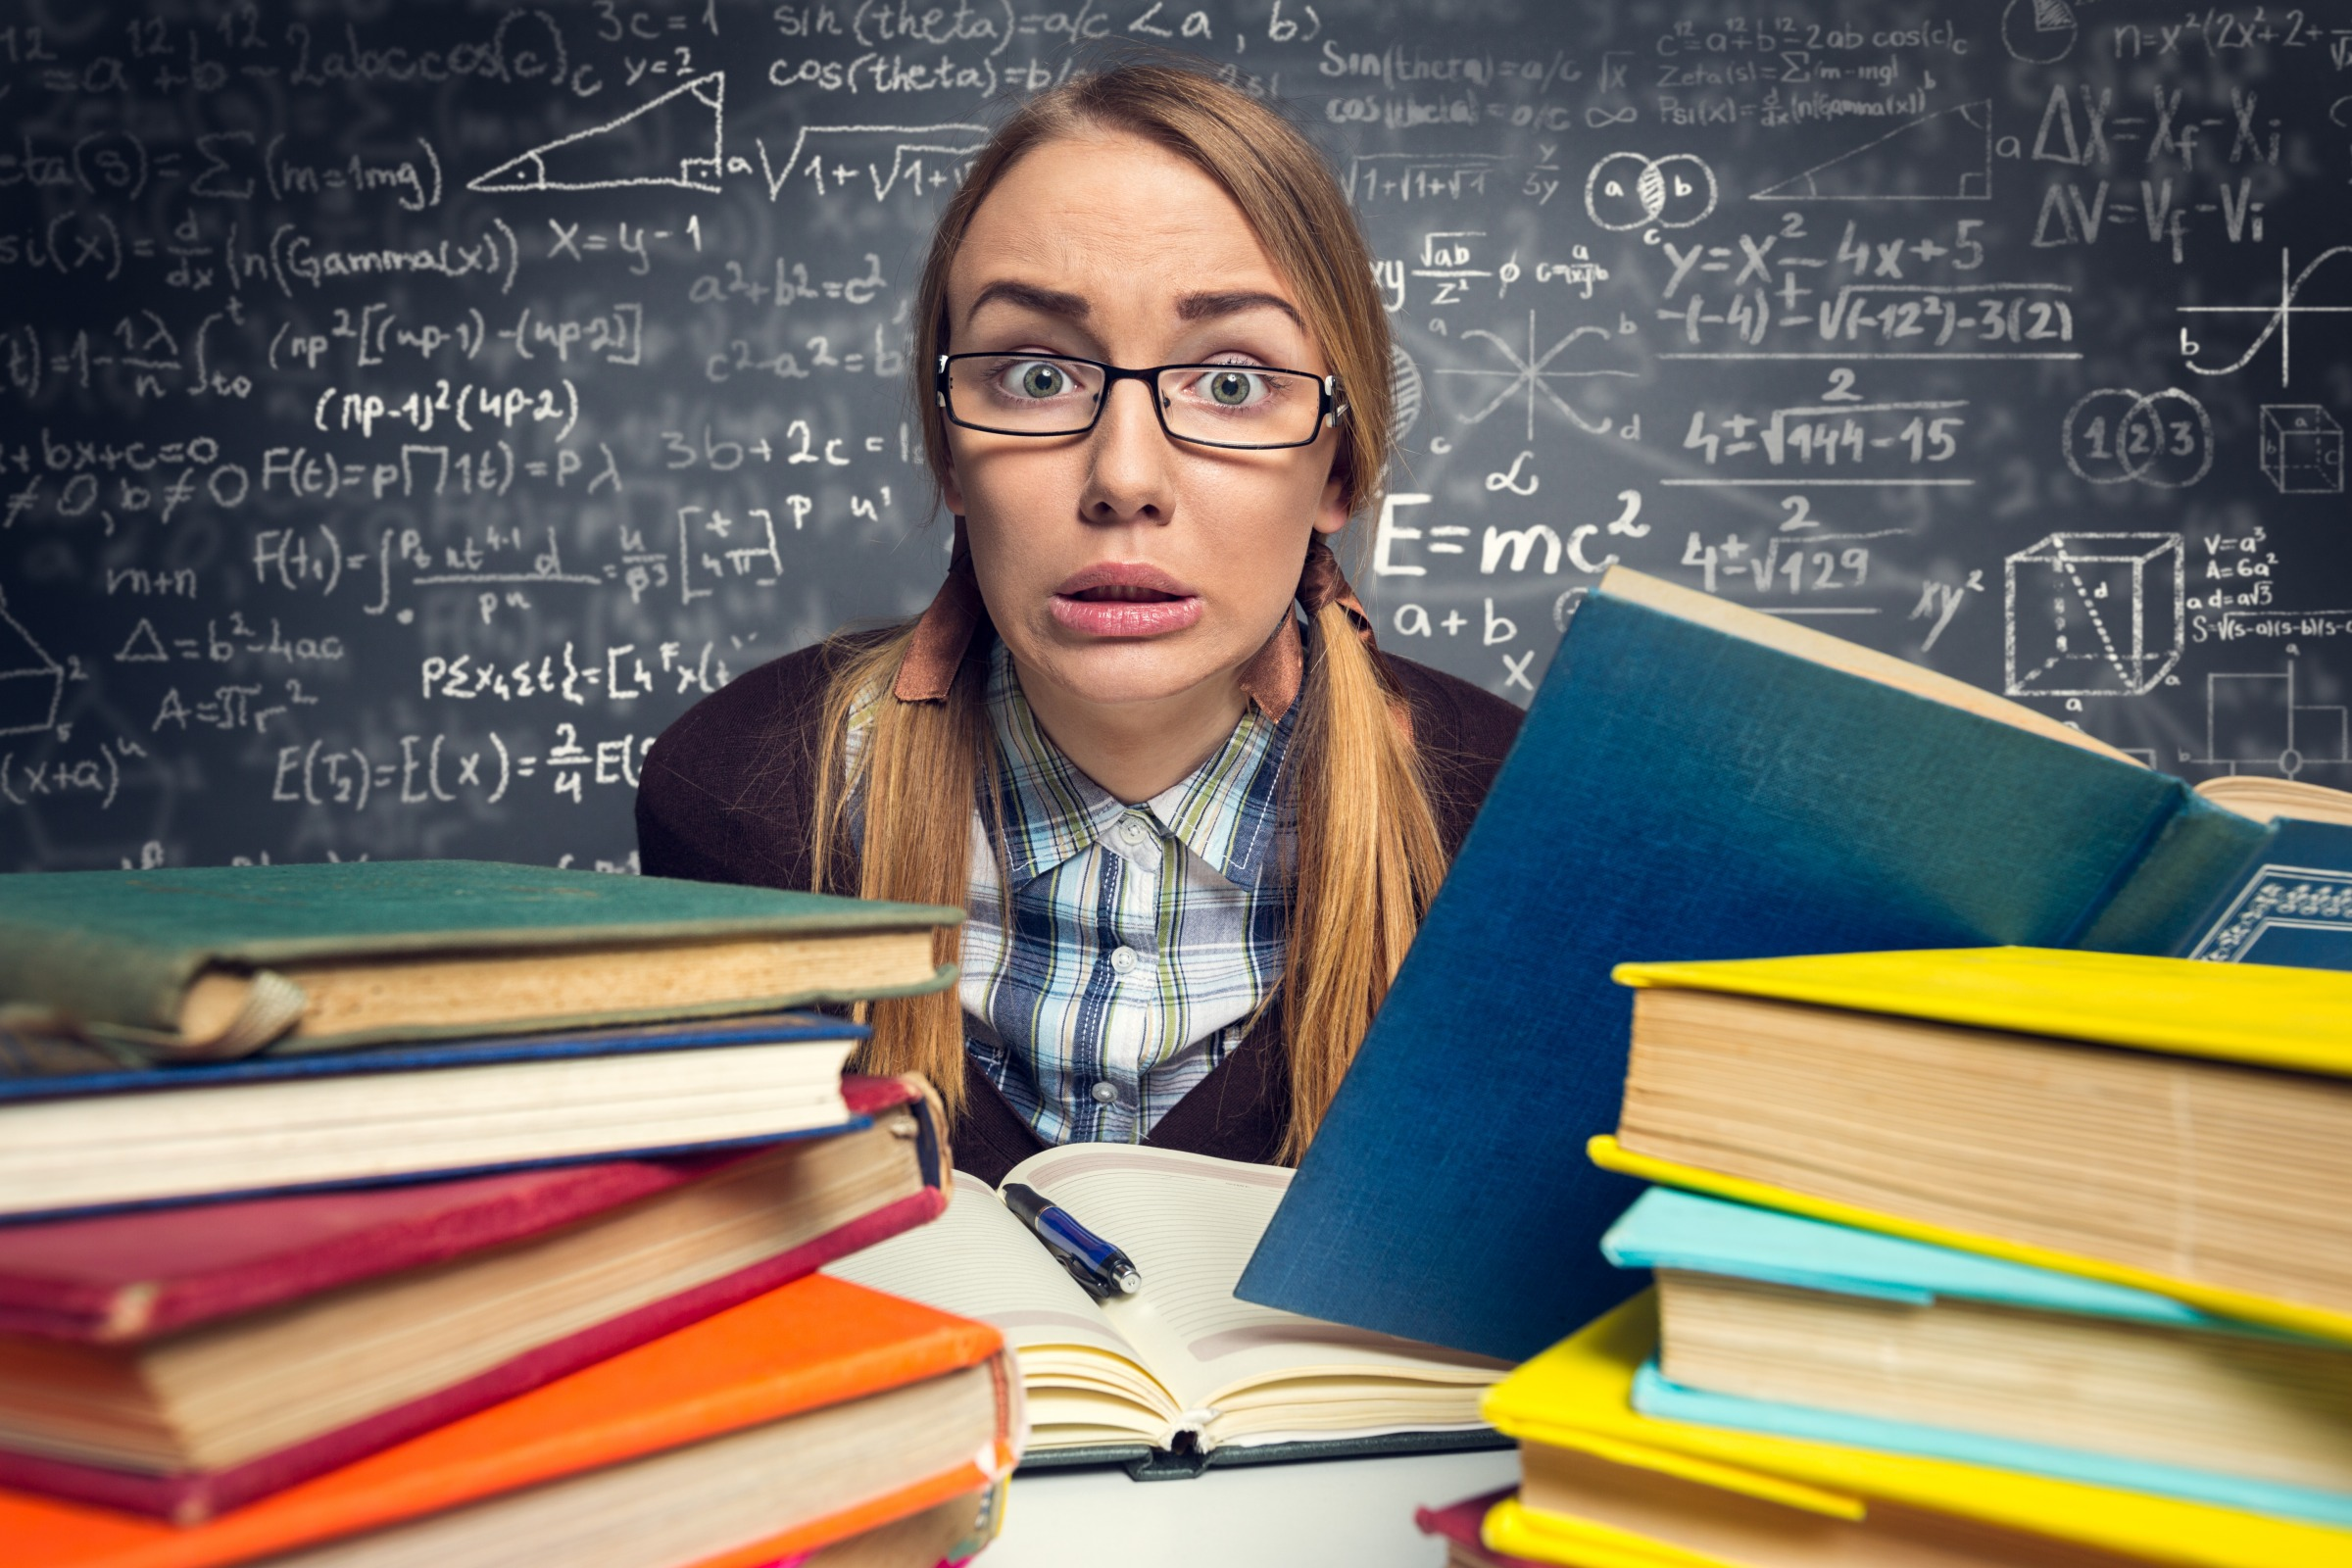 5 Exam Revision Tips When During Your Final Year